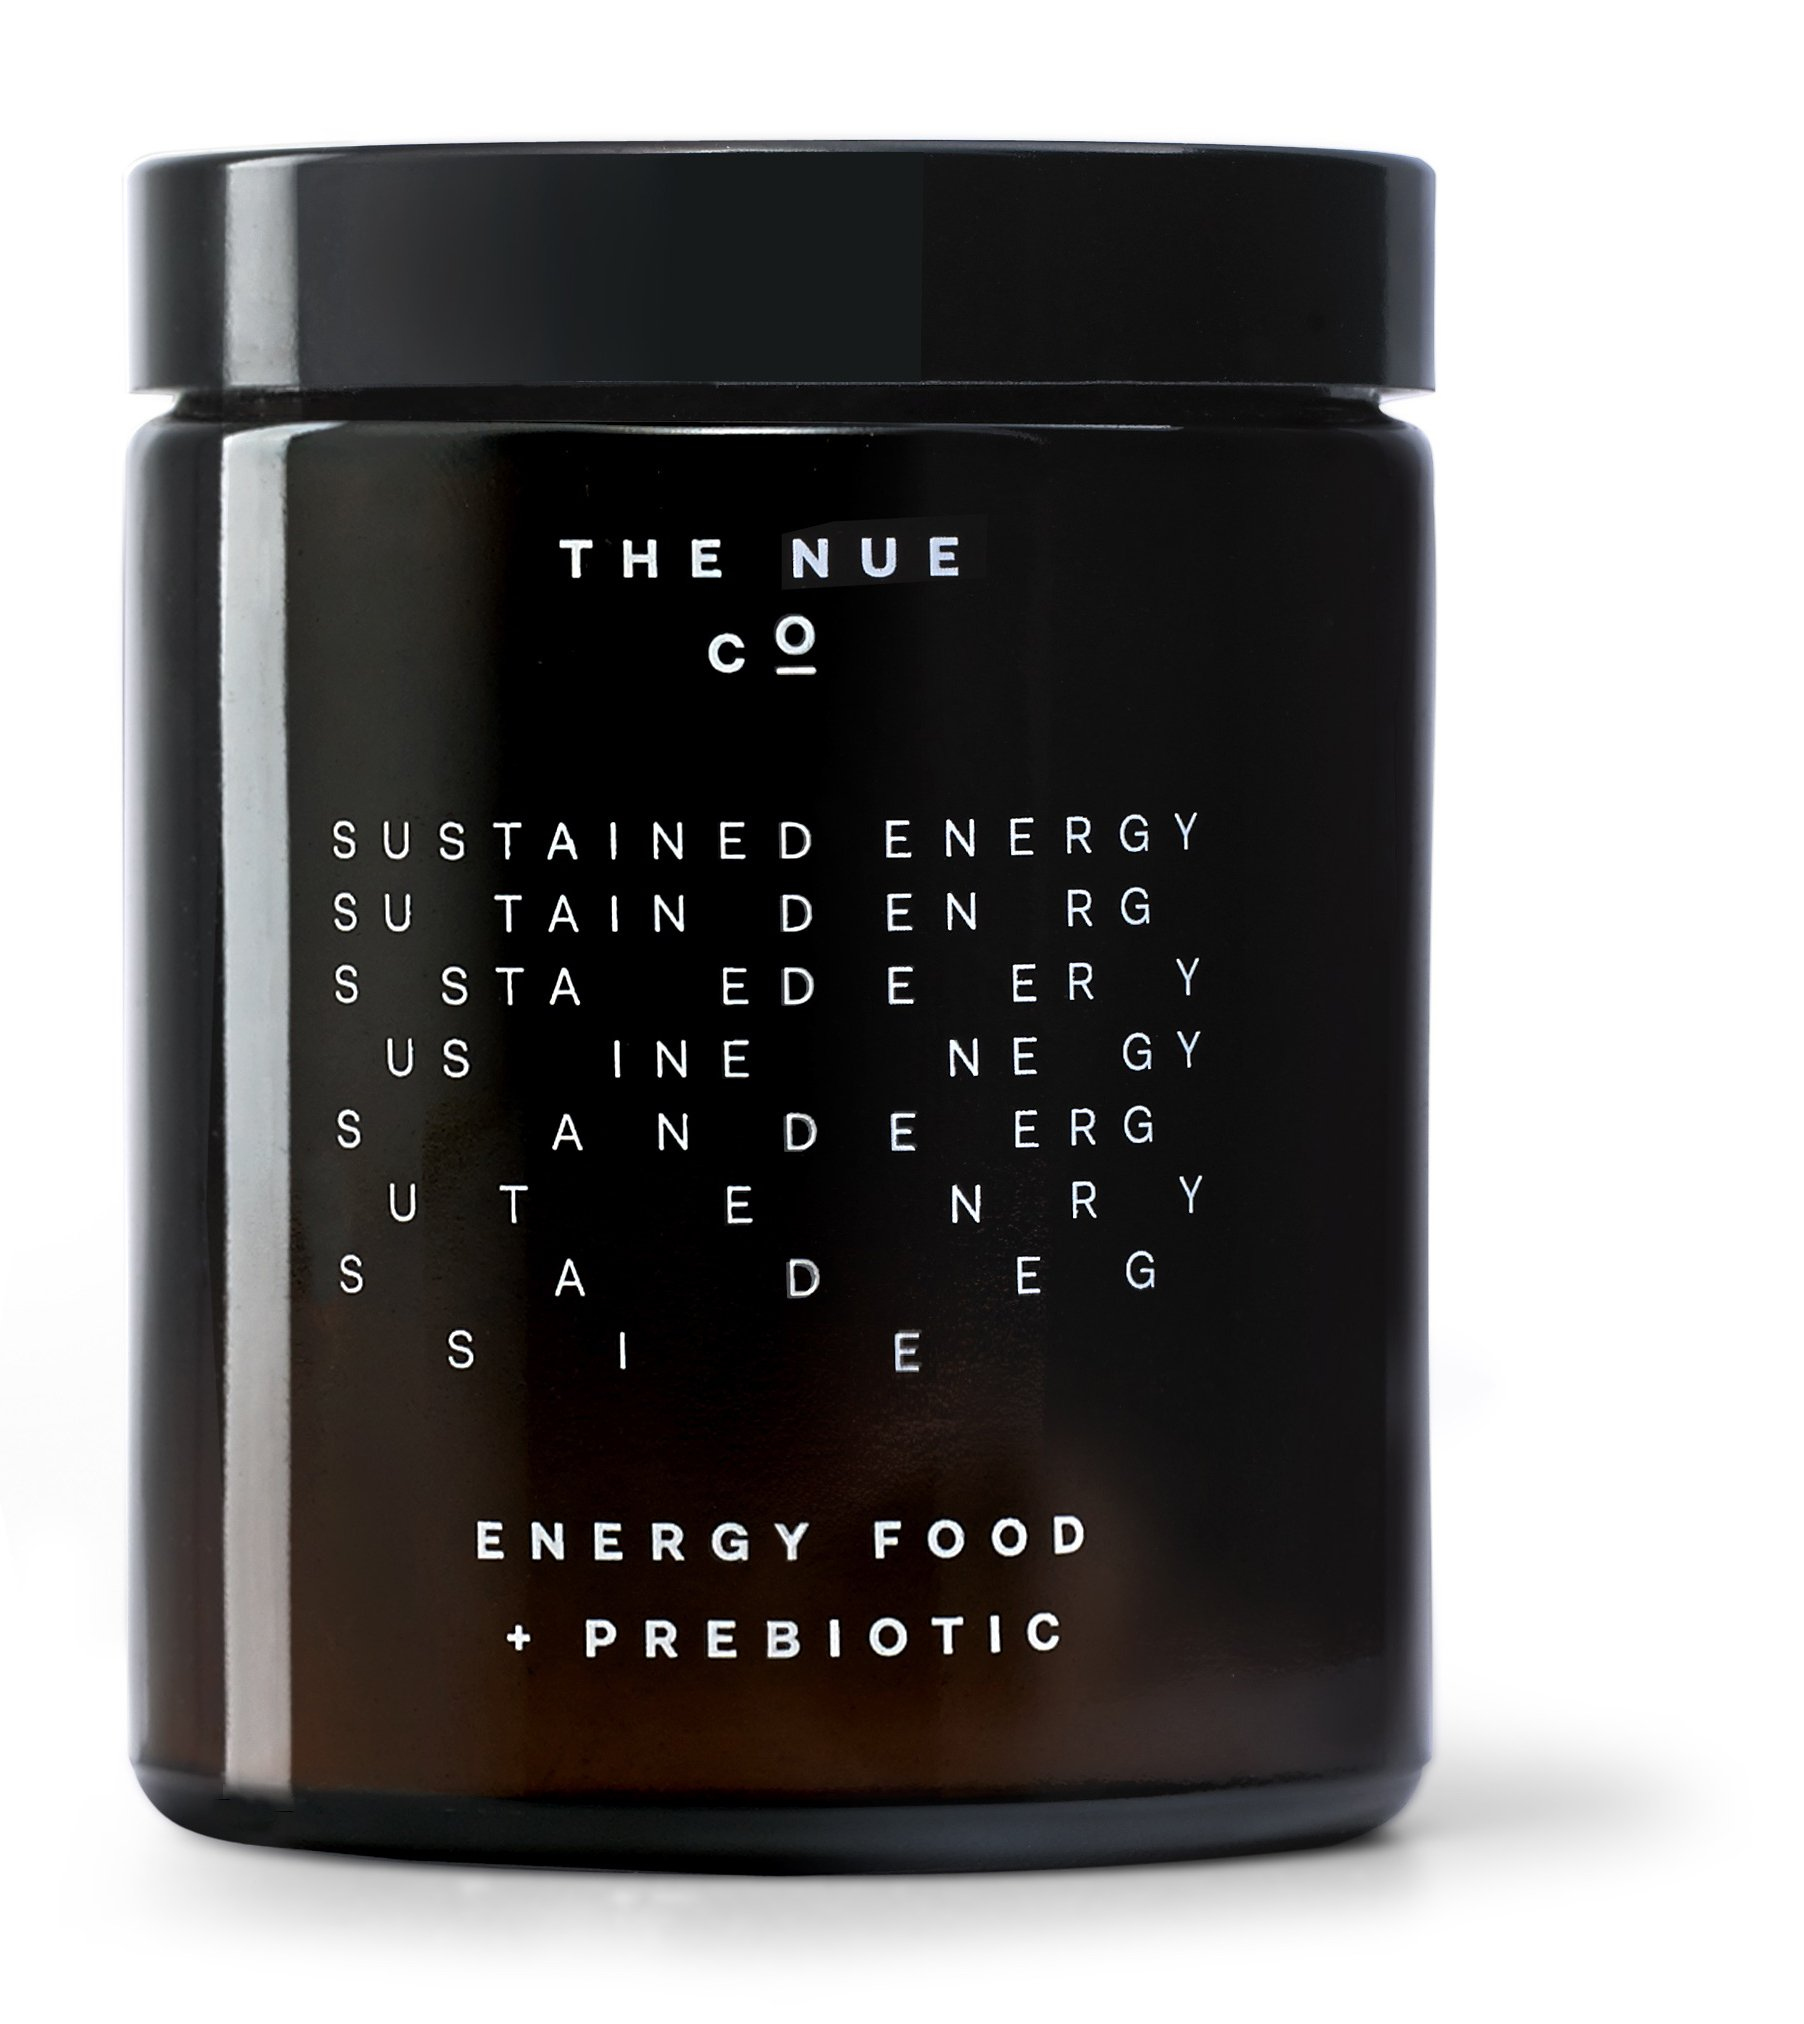 The Nue Co. - All Natural Energy Food + Prebiotic (3.5 oz / 100 g)